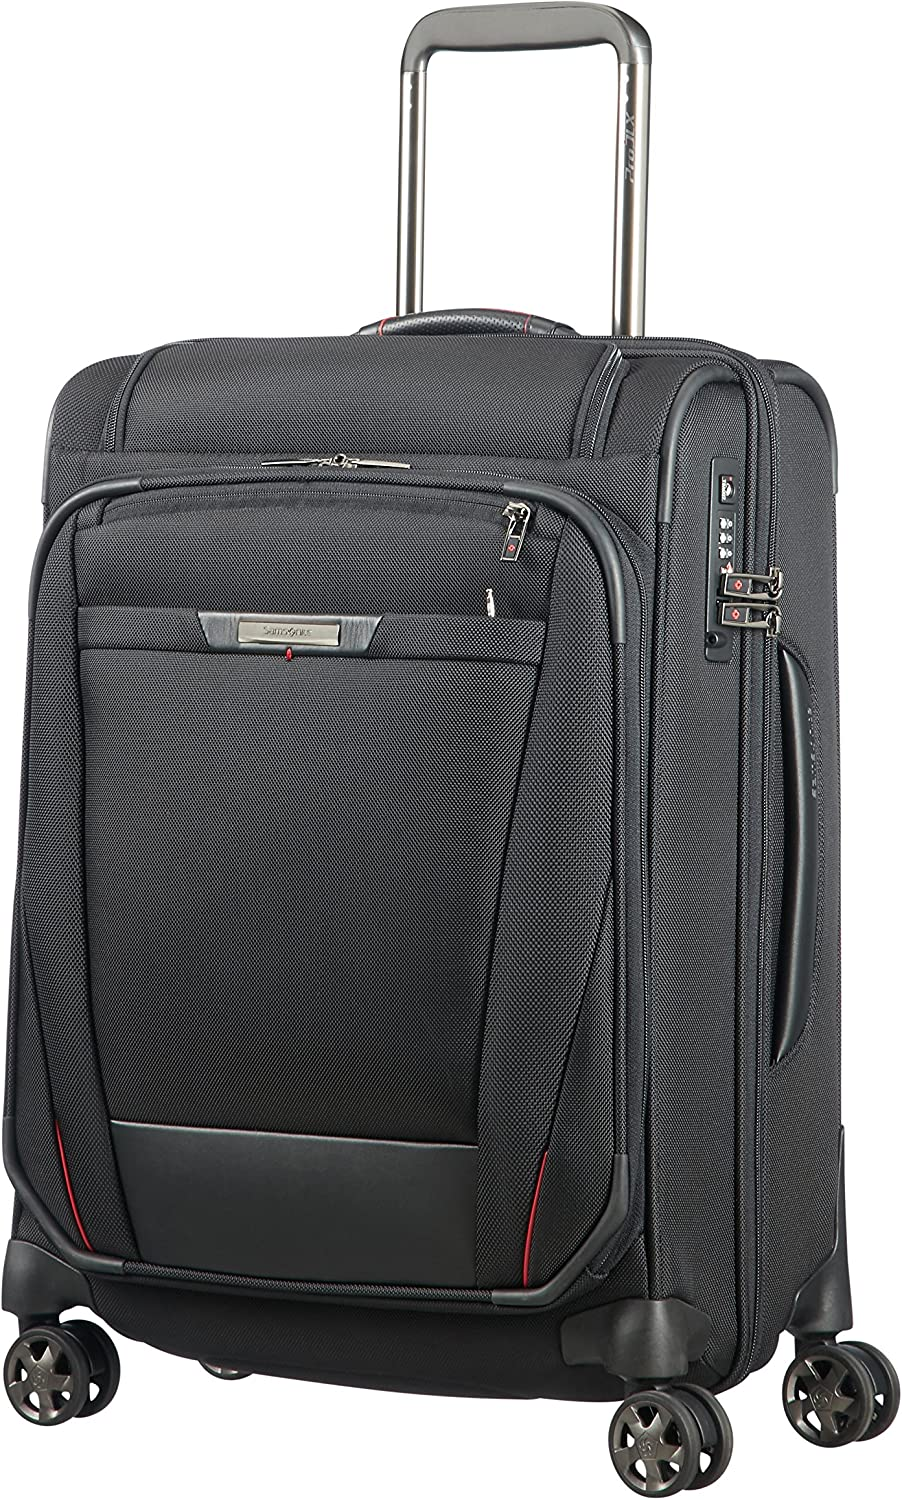 SAMSONITE Pro-DLX 5 - Mobile Office Spinner 56 Quickaccess 3.3 KG Equipaje de Mano, cm, 37.5 Liters, Negro (Black)